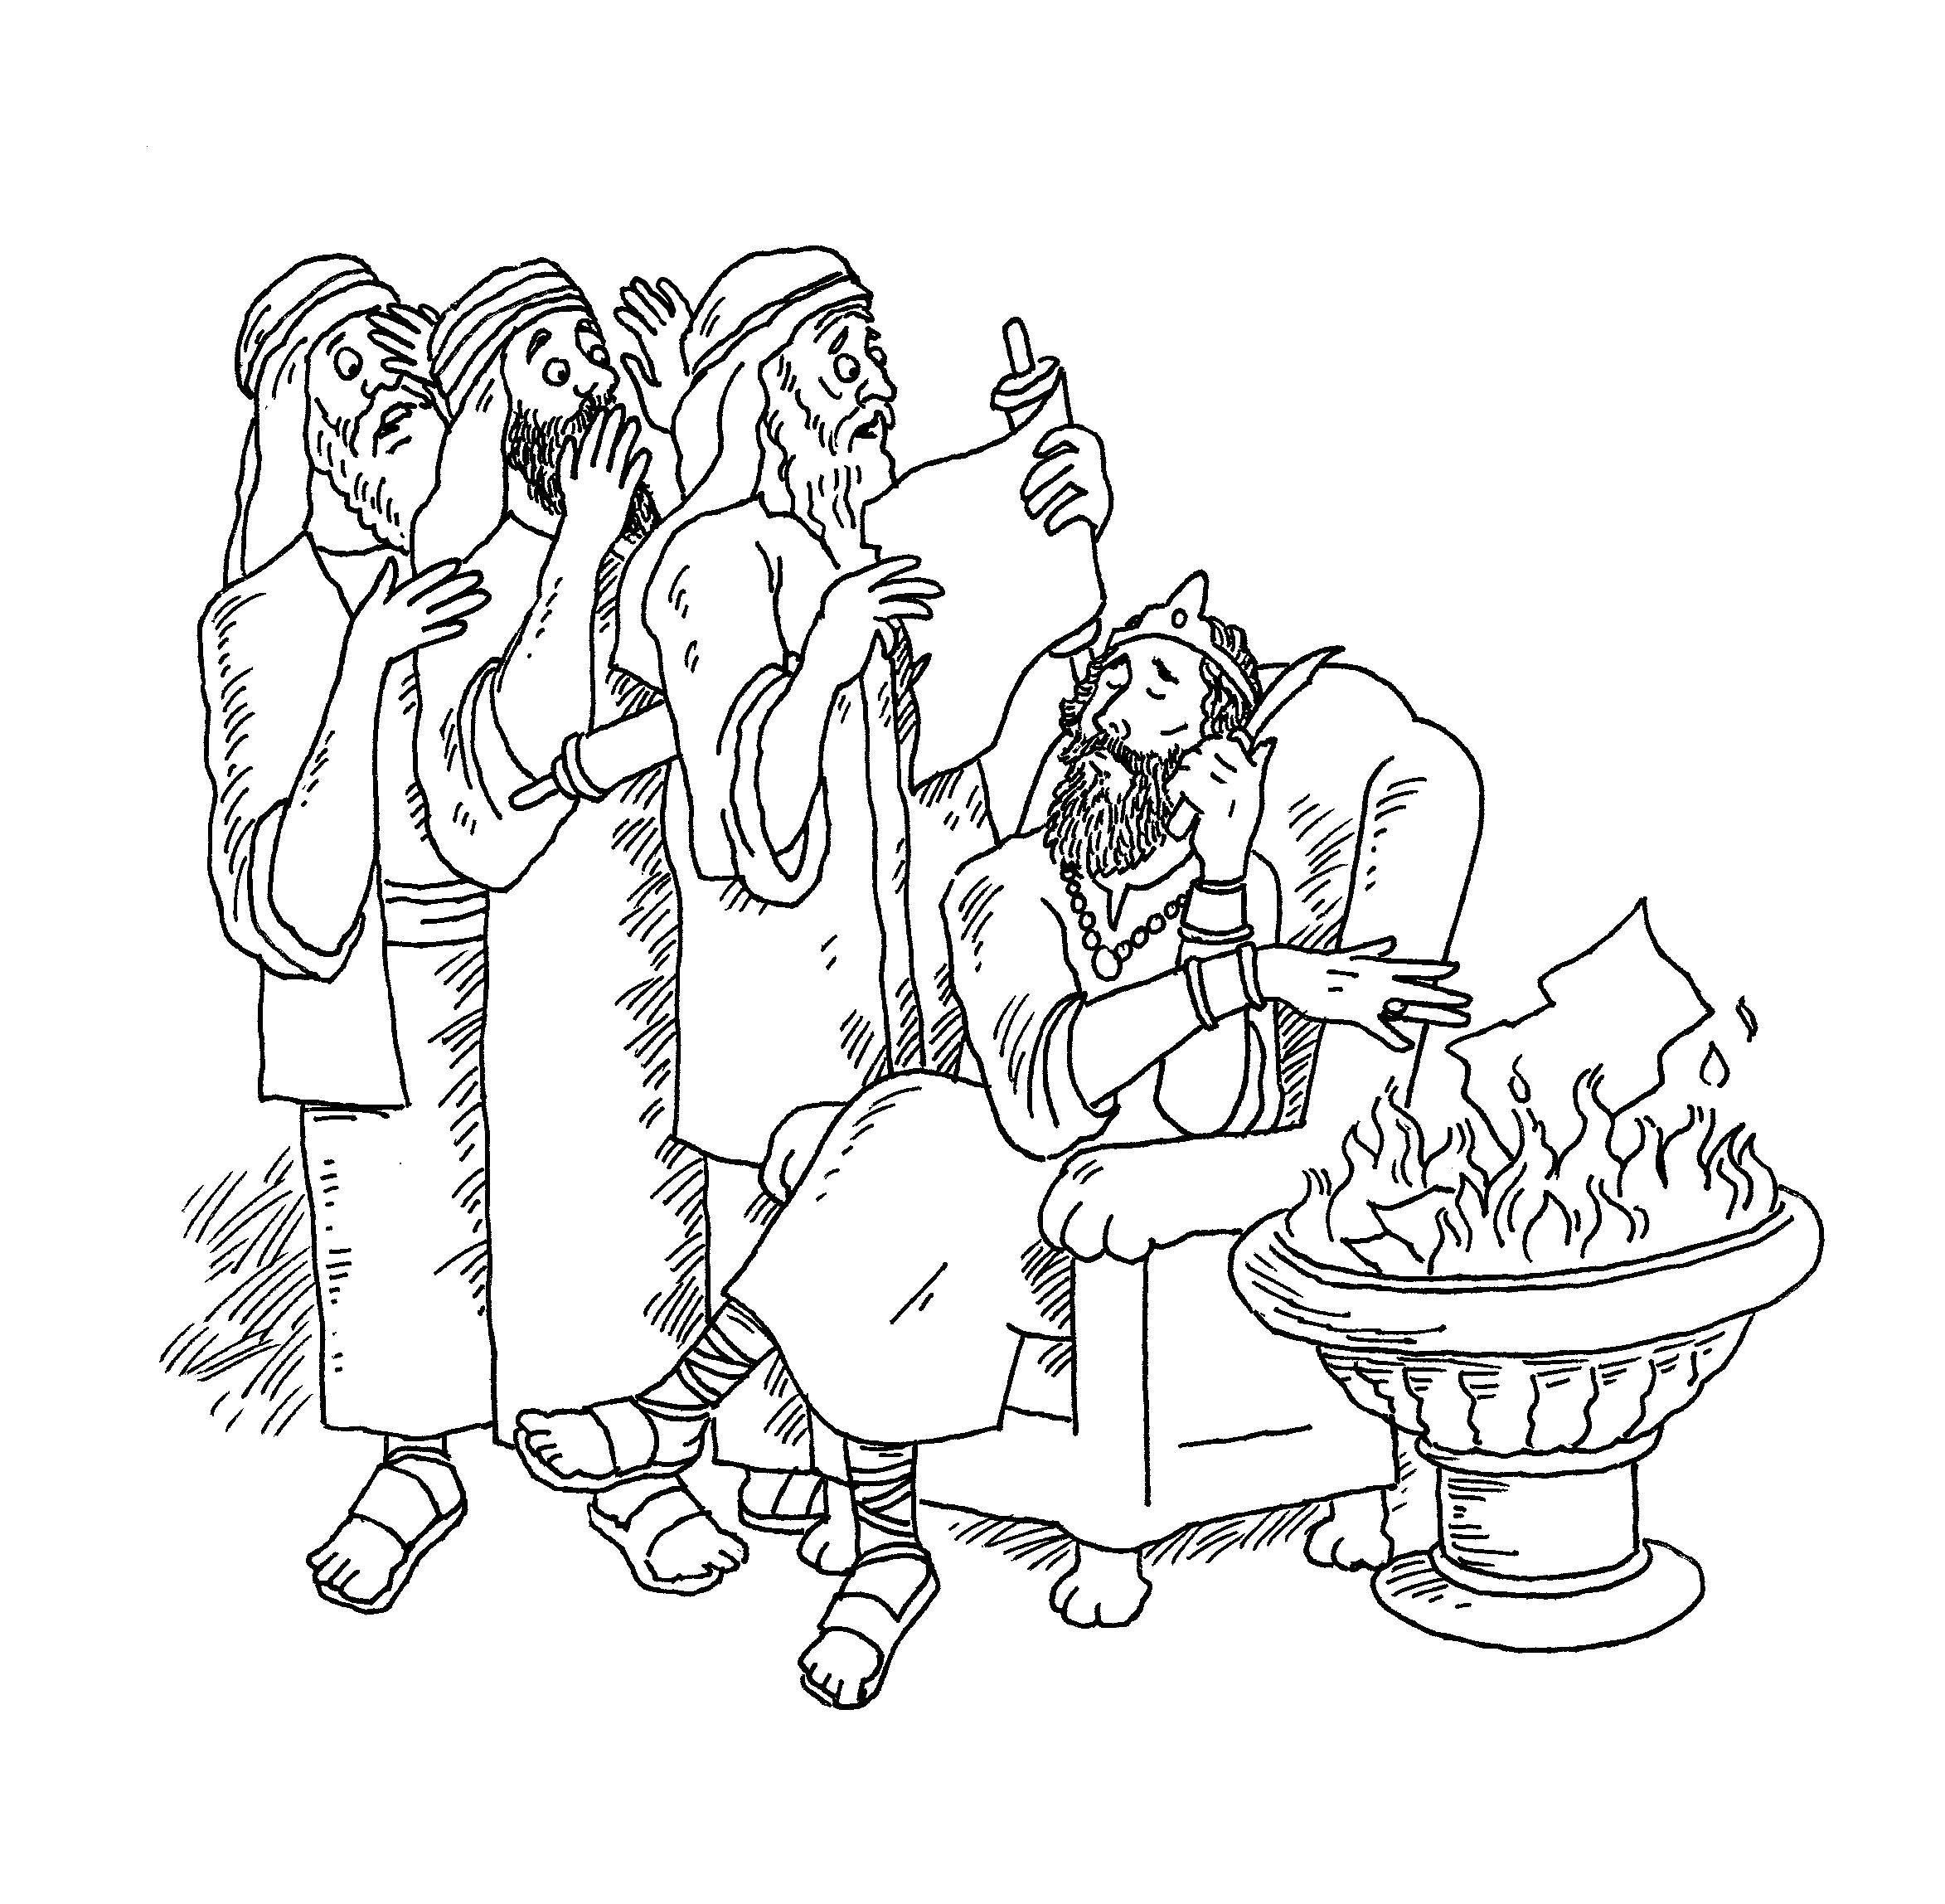 Uncategorized King Josiah Coloring Page an authority that even kings cant ignore jeremiah 361 32 king josiah coloring page